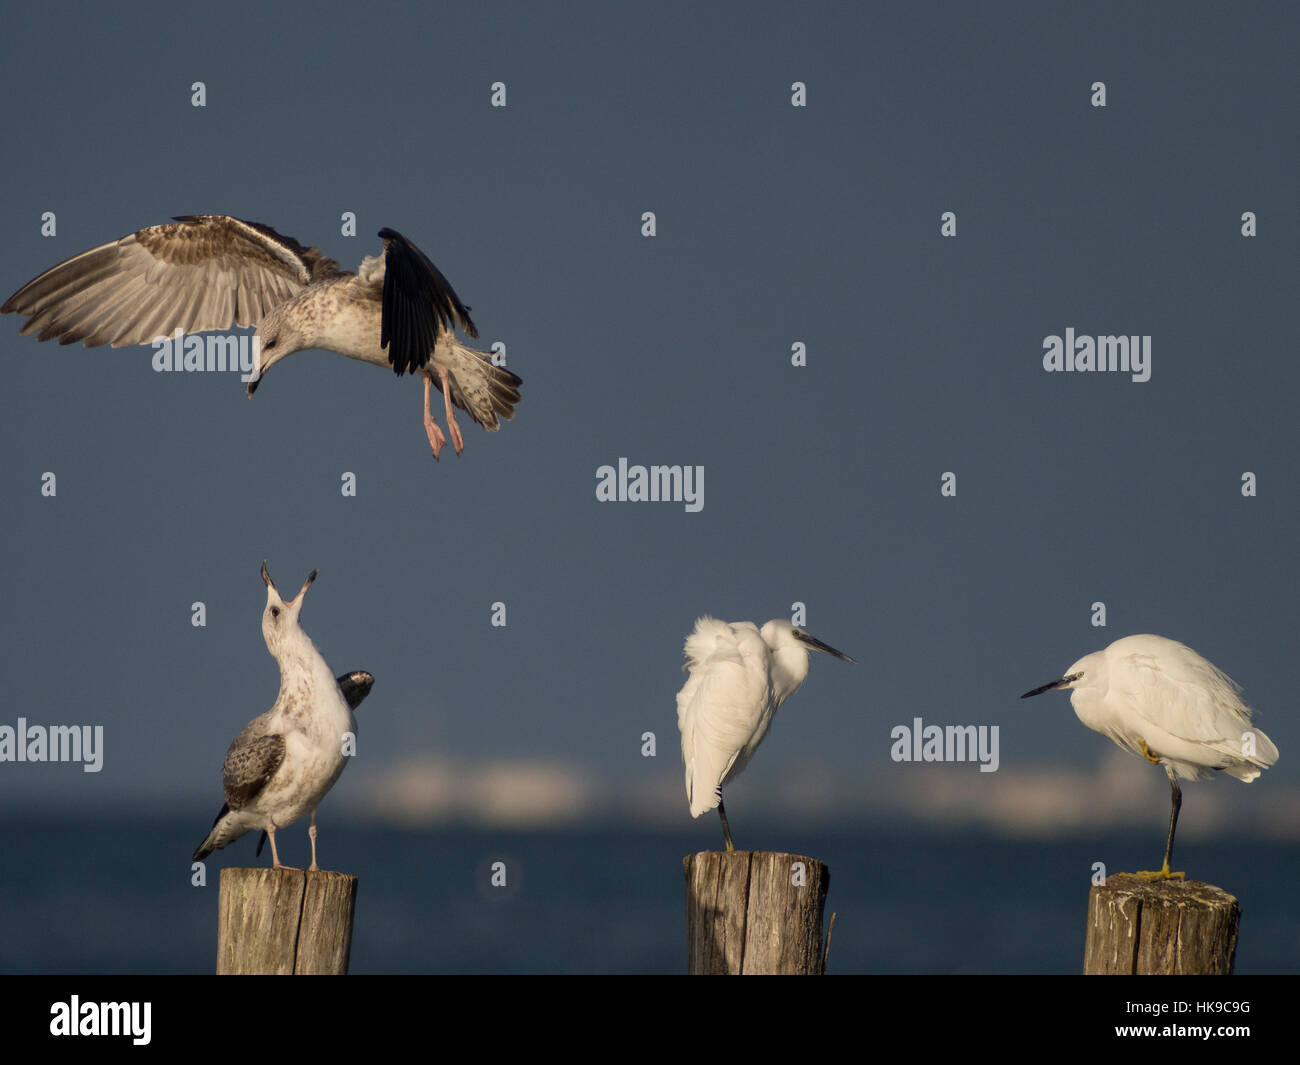 Rivalry for perched on one posts. - Stock Image